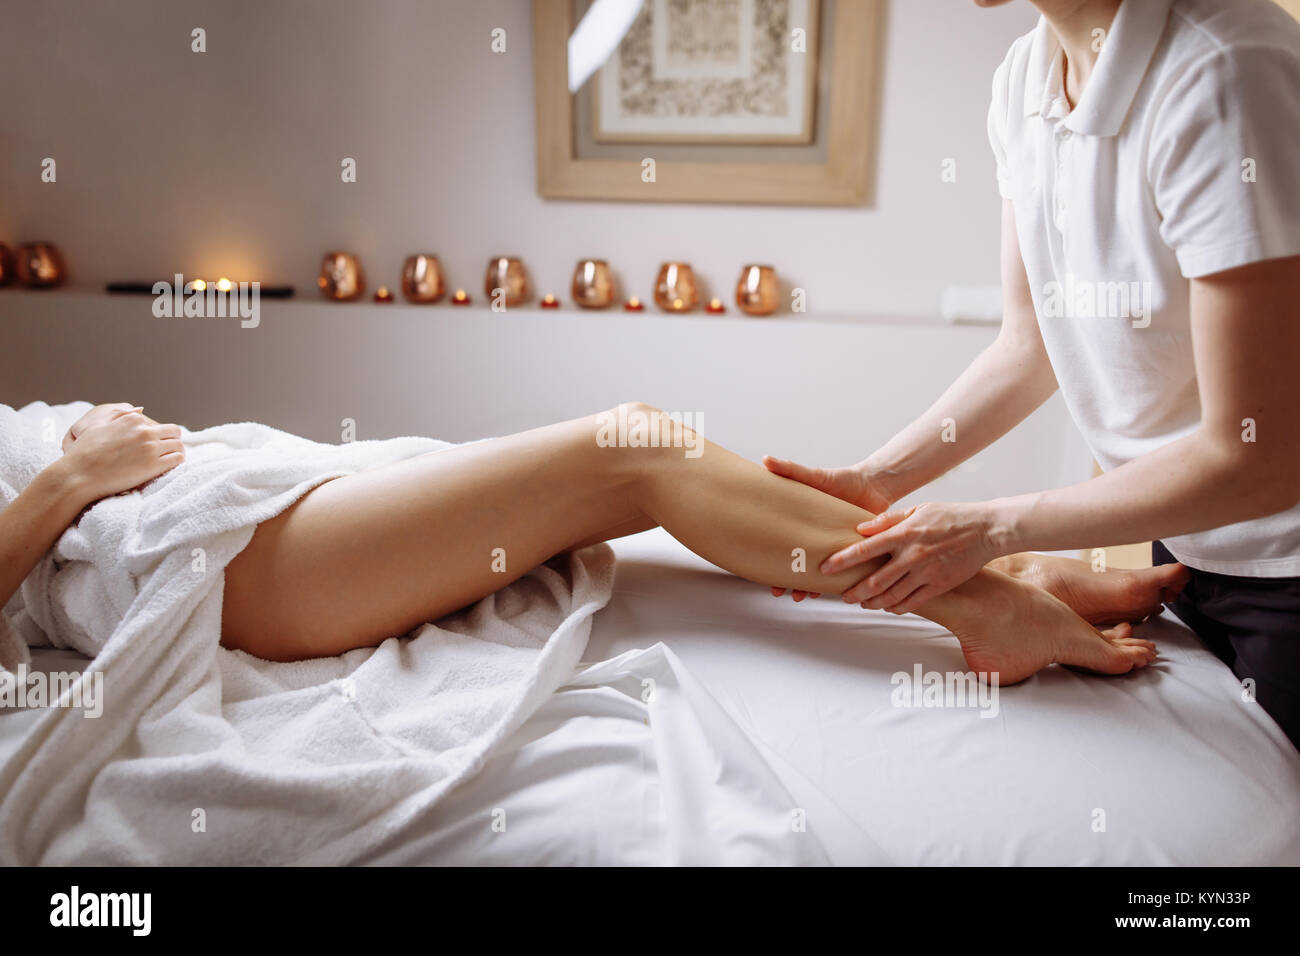 hands massaging human calf muscle.Therapist applying pressure on leg - Stock Image